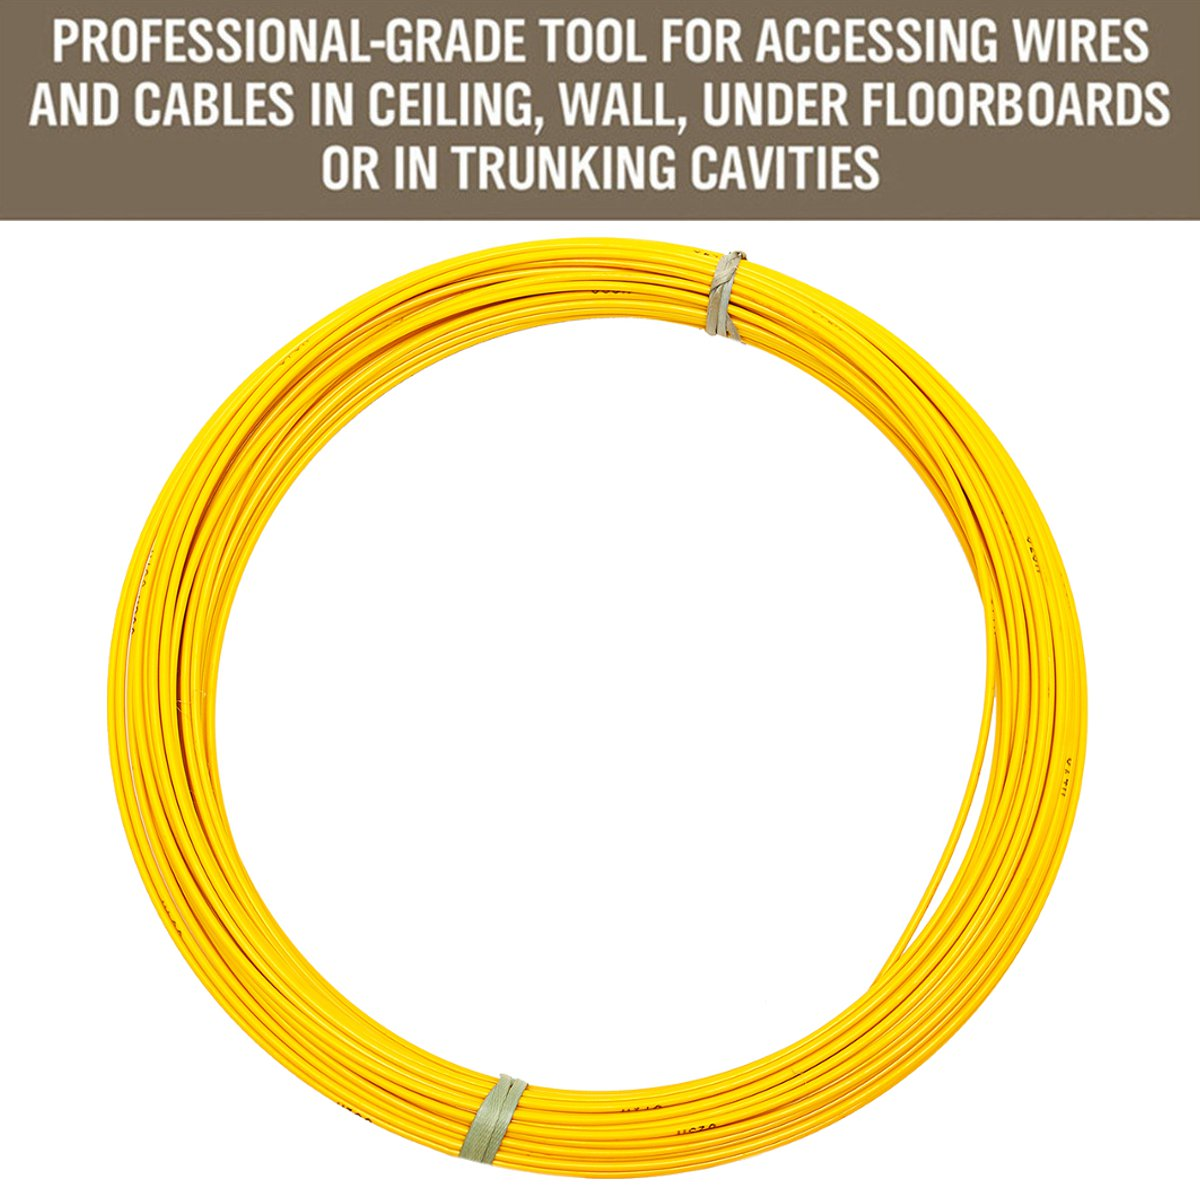 6mm X 70 150m Fiberglass Rodder Fish Snake Wire Cable Puller Tape House Wiring Under Floorboards Detail Image